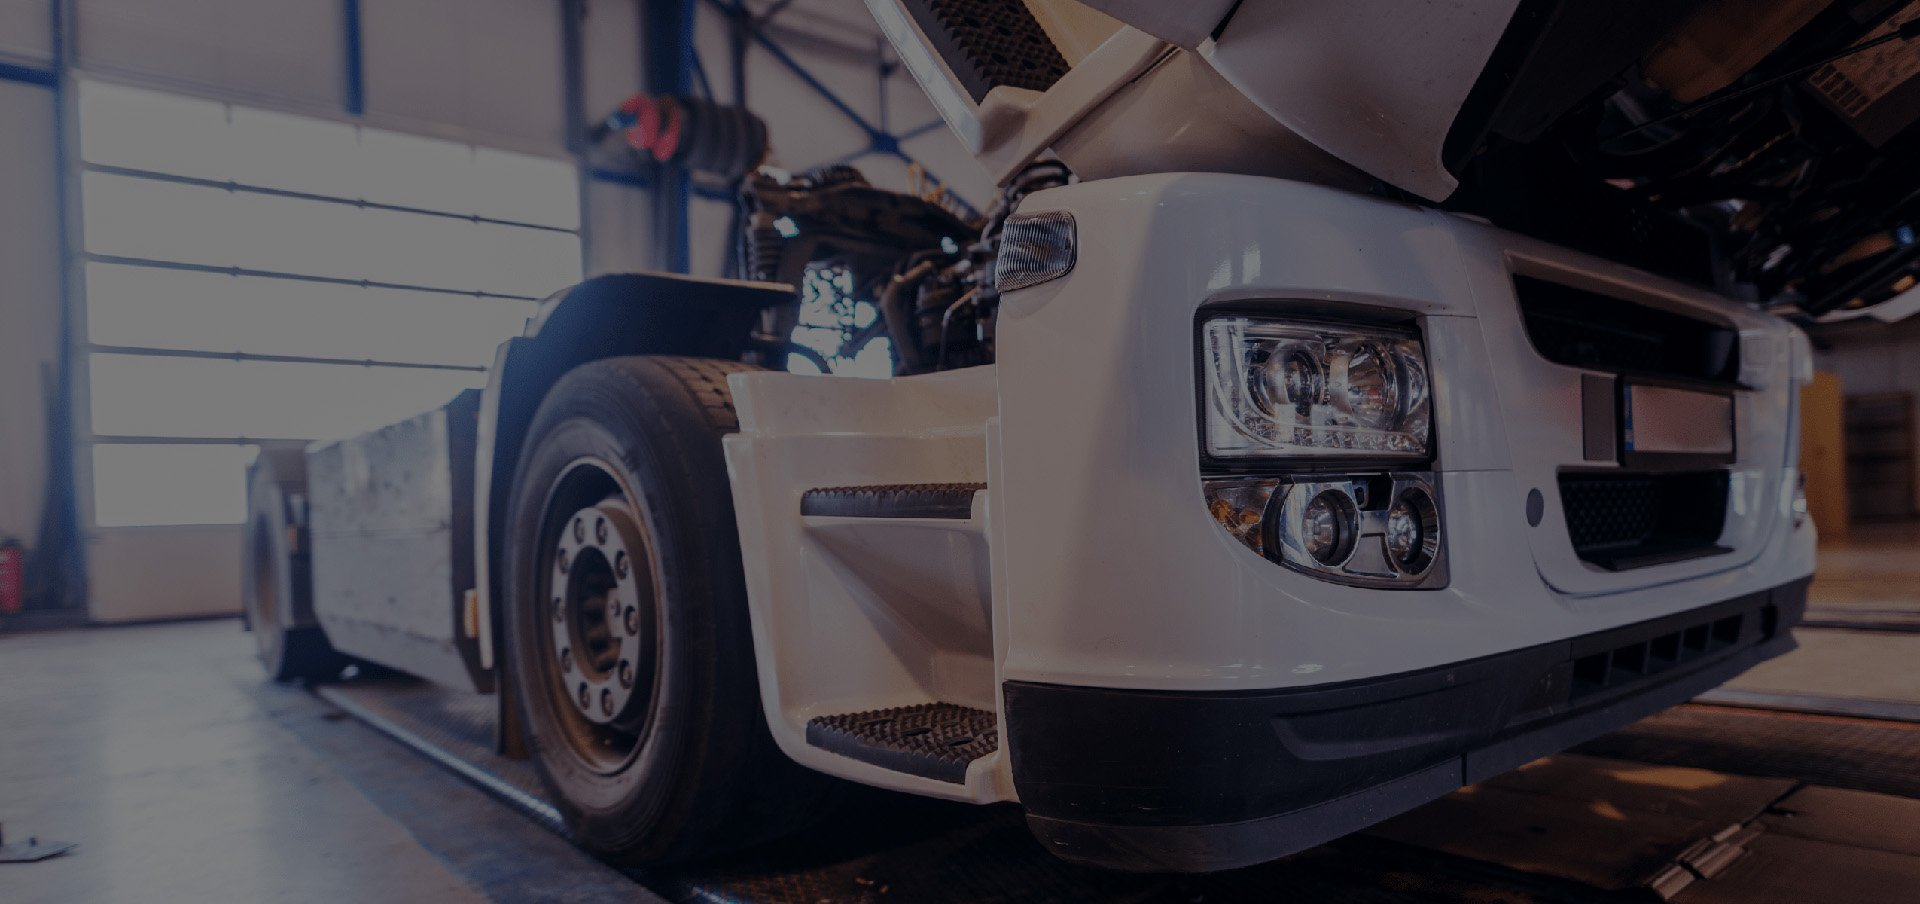 We help individual mechanics as well as companies in finding heavy duty and semi truck parts they need.